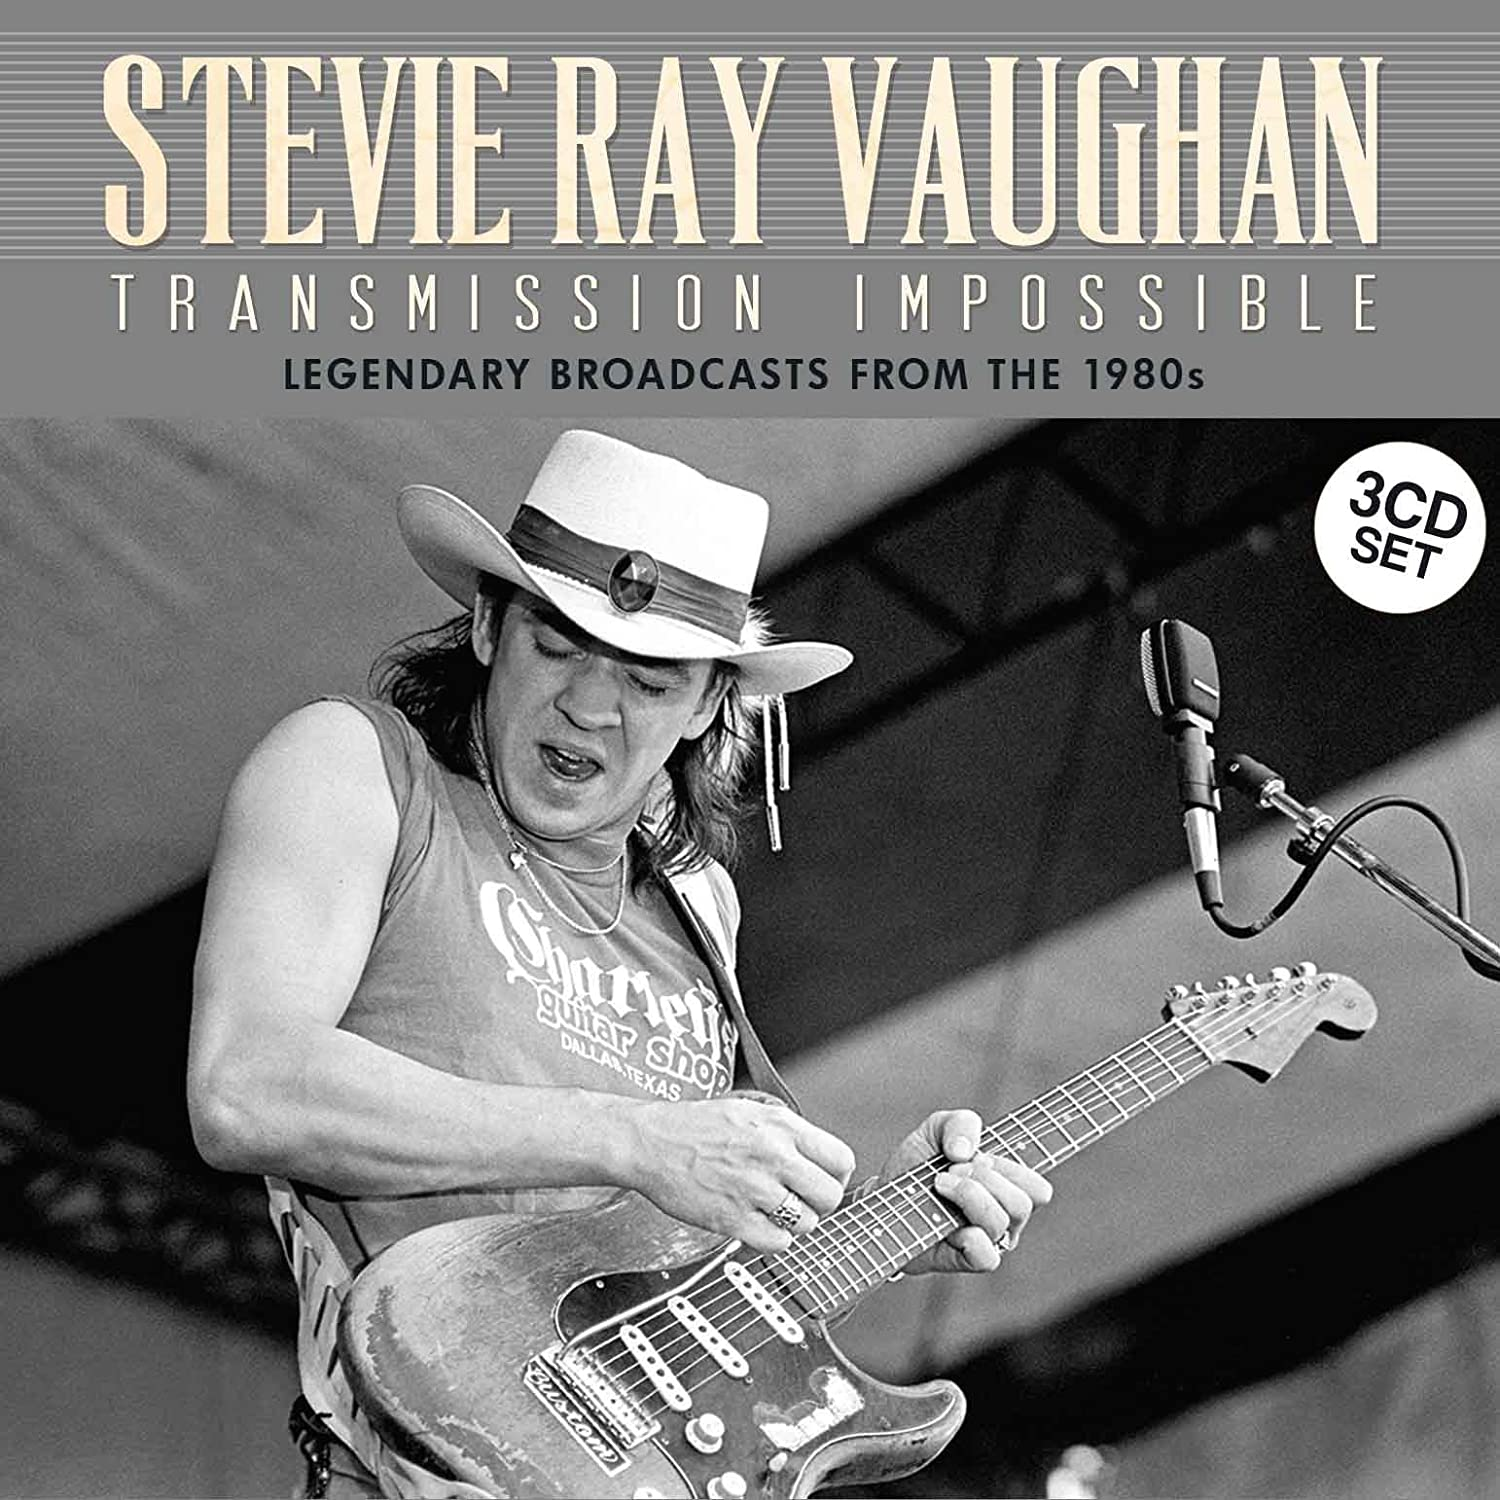 an overview of the life of stevie ray vaughan Find stevie ray vaughan – life by the drop lyrics and search for stevie ray vaughan listen online and get new recommendations, only at lastfm.